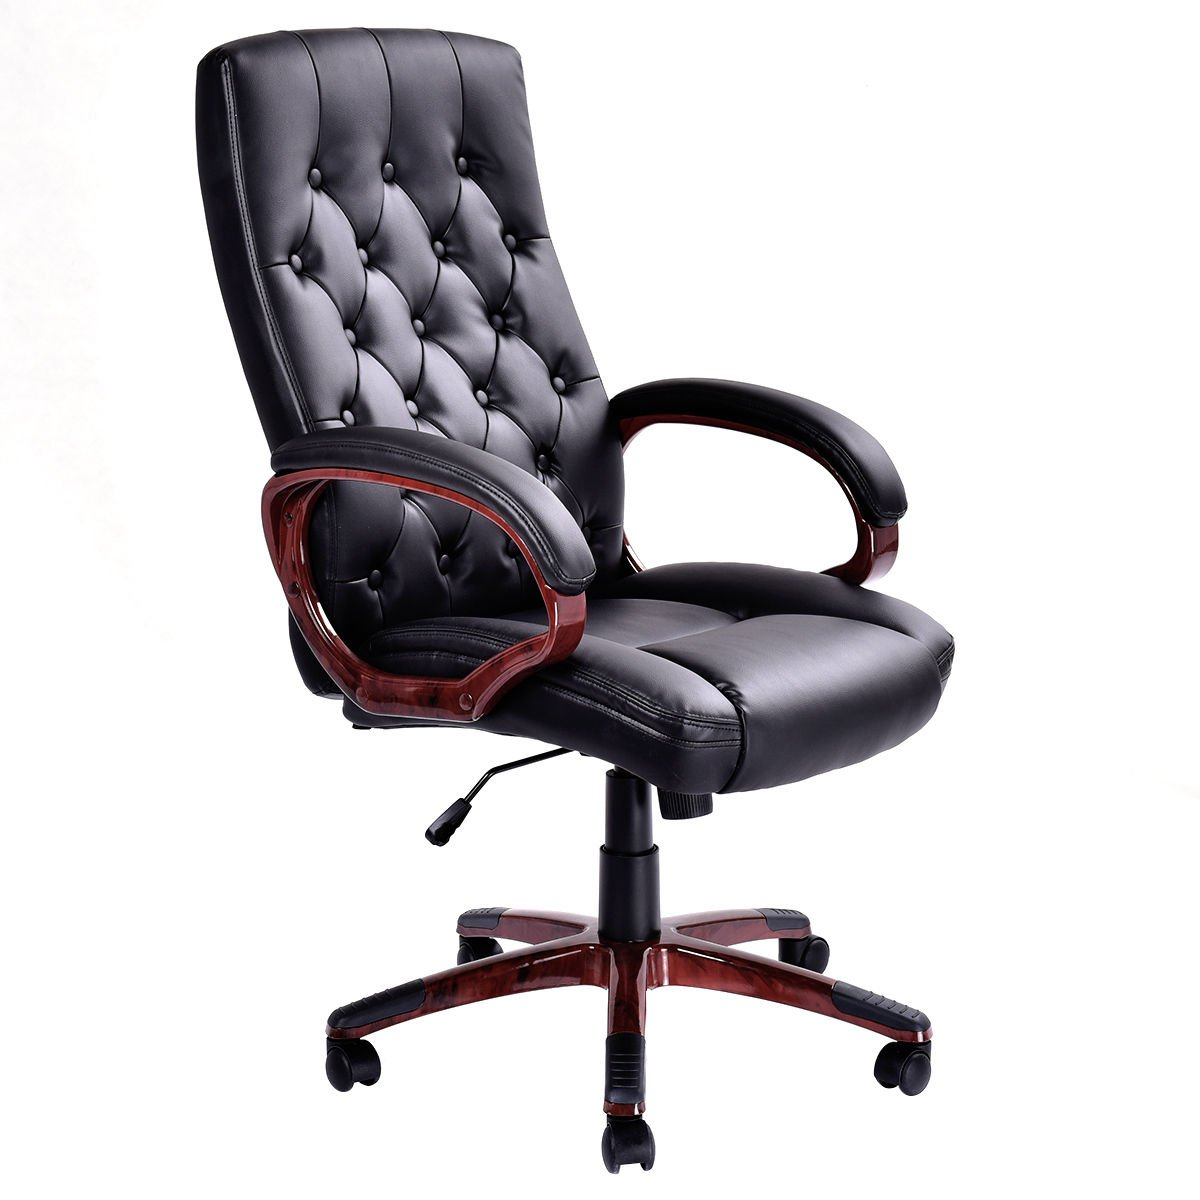 Giantex Ergonomic High Back Traditional Tufted Swivel Office Executive Chair, Black 0